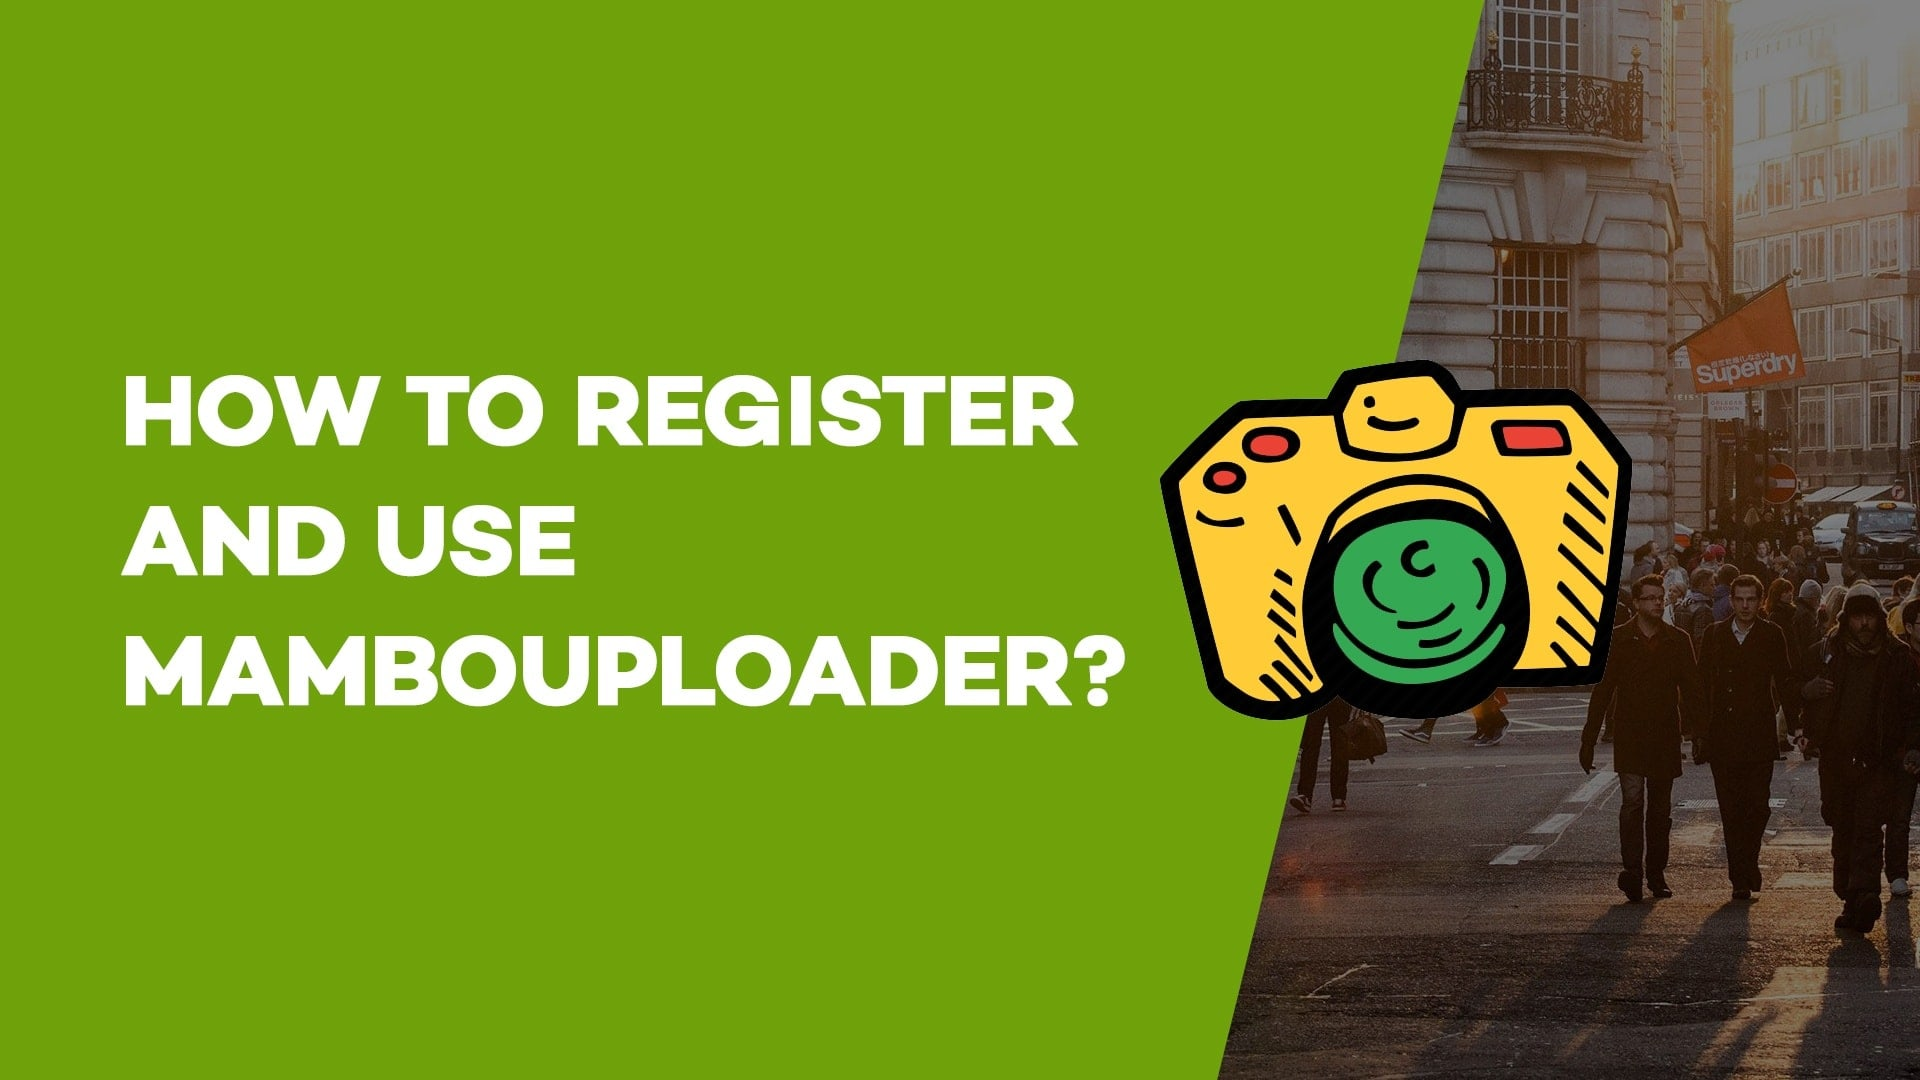 How to Register and Use Mambouploader?